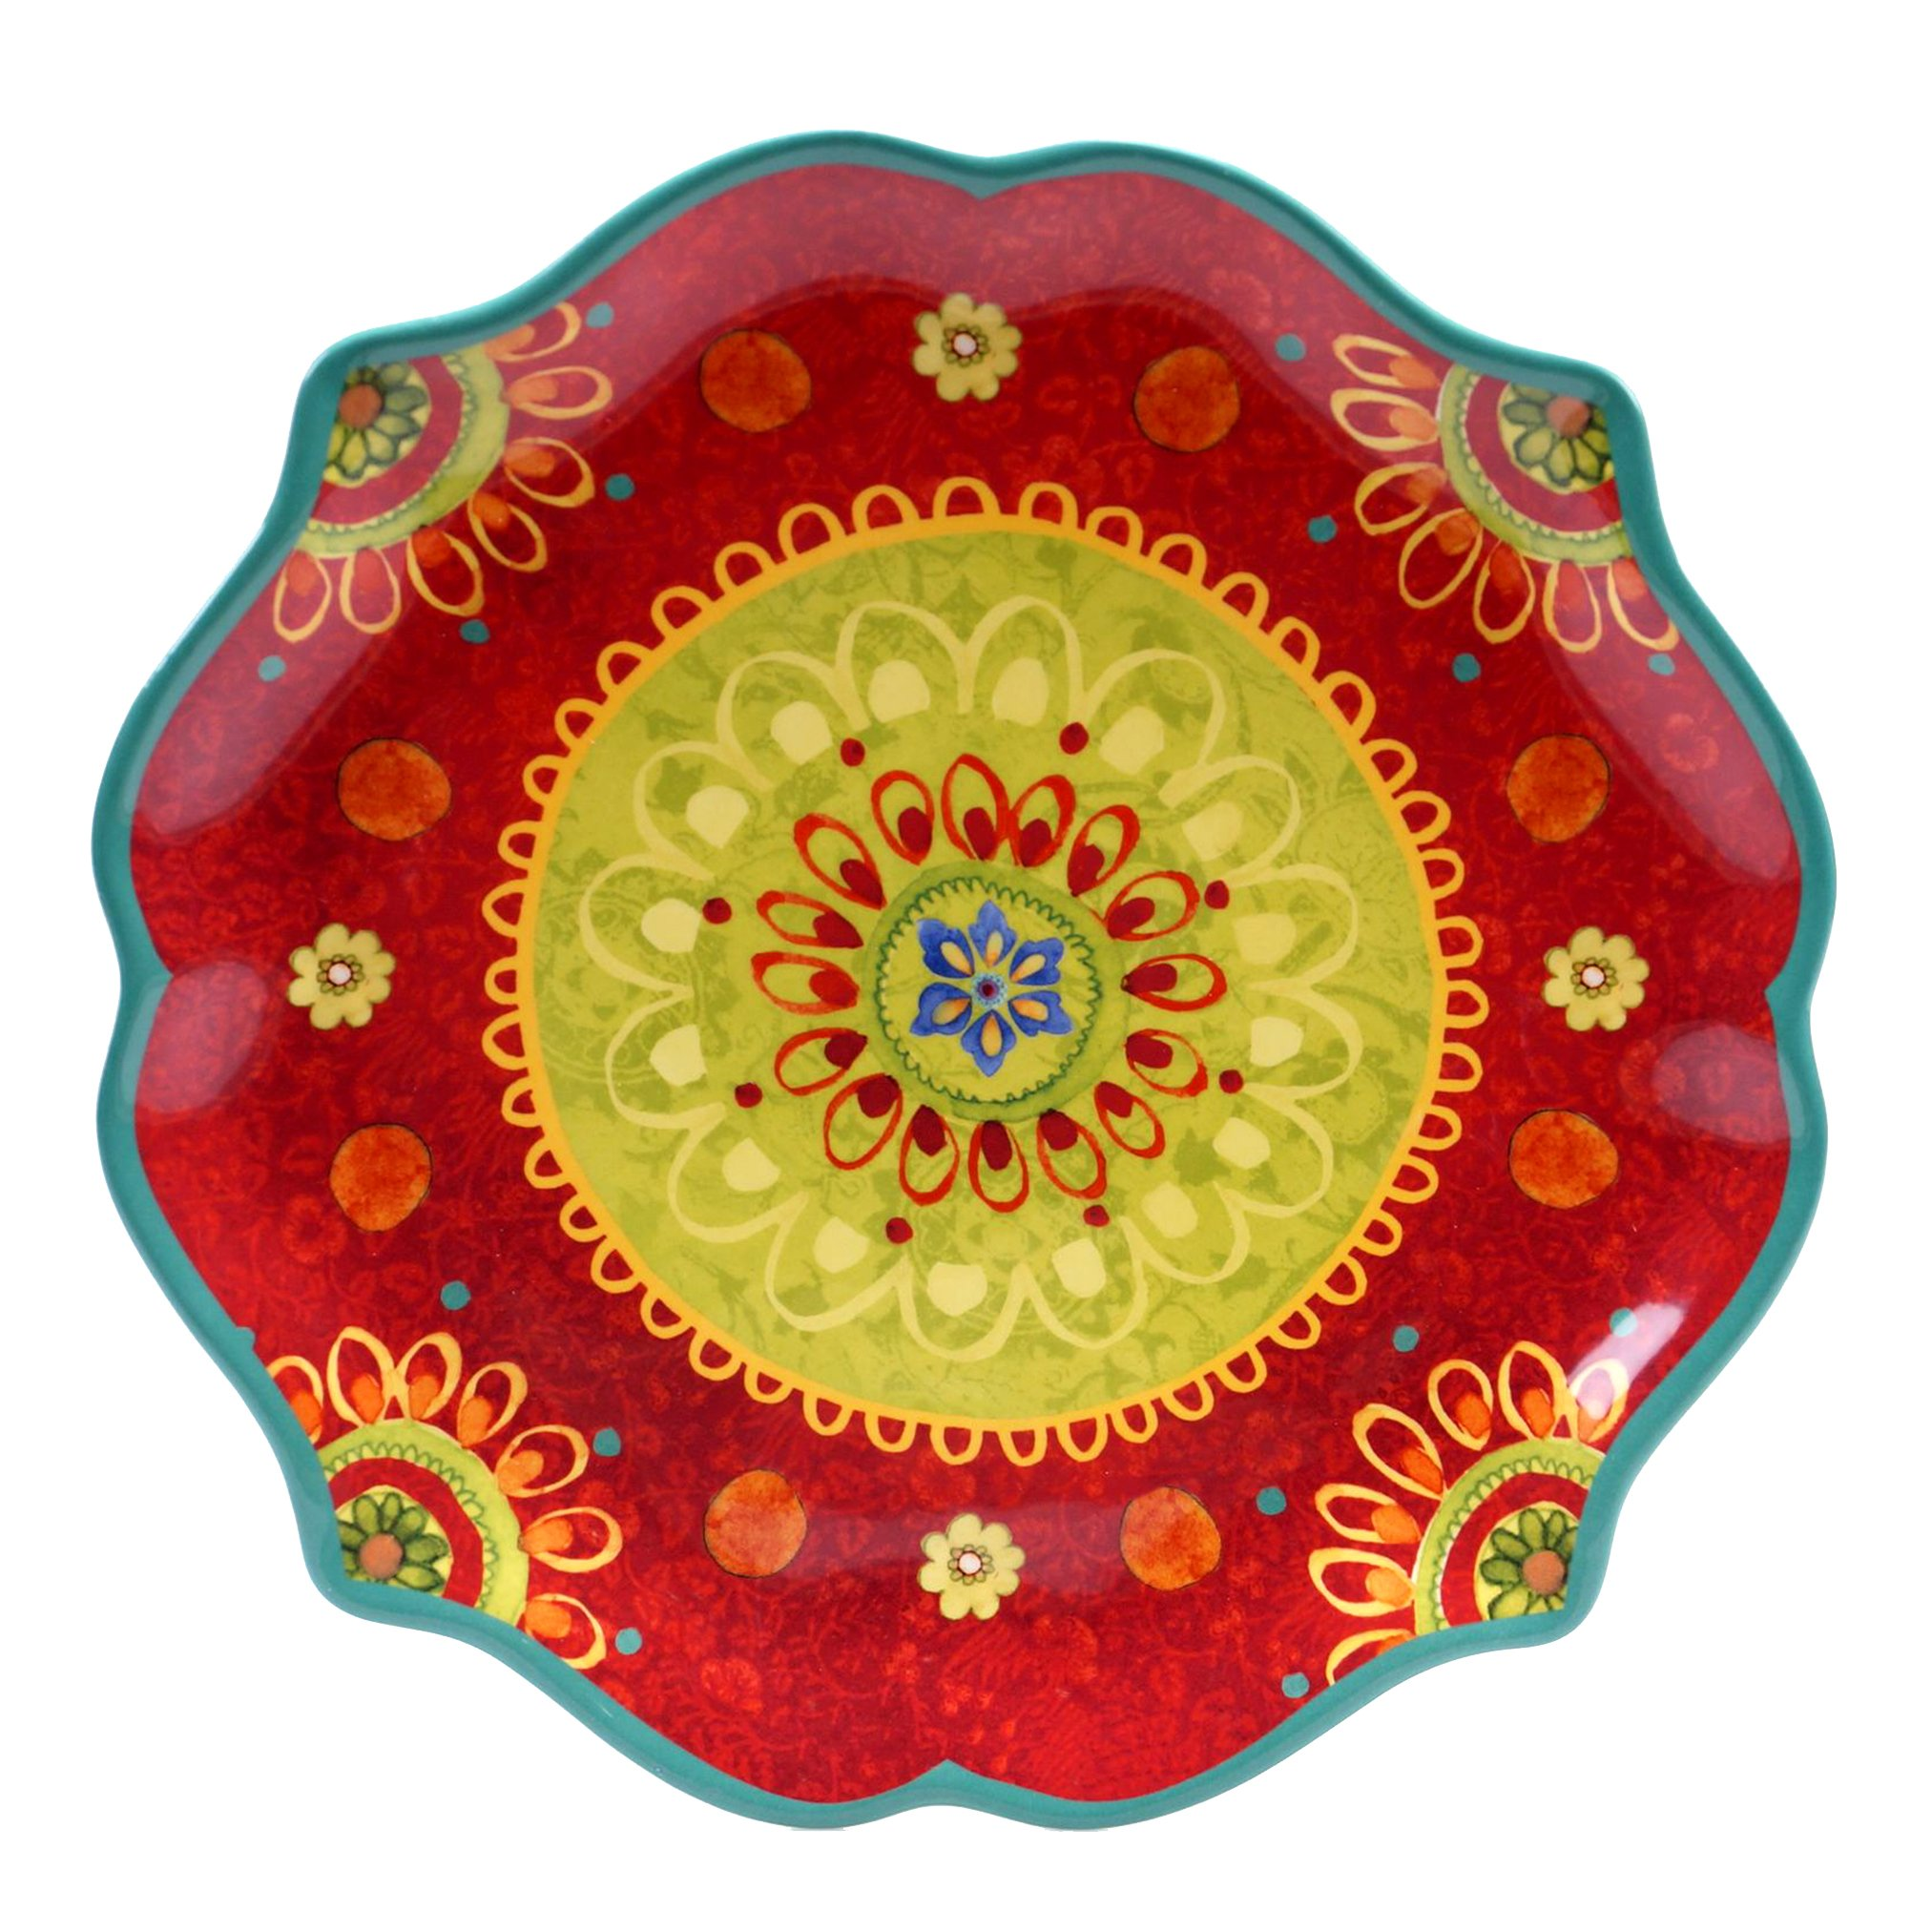 Certified International 22454 Tunisian Sunset Round Scallop Shaped Platter, 13.25'', Multicolored